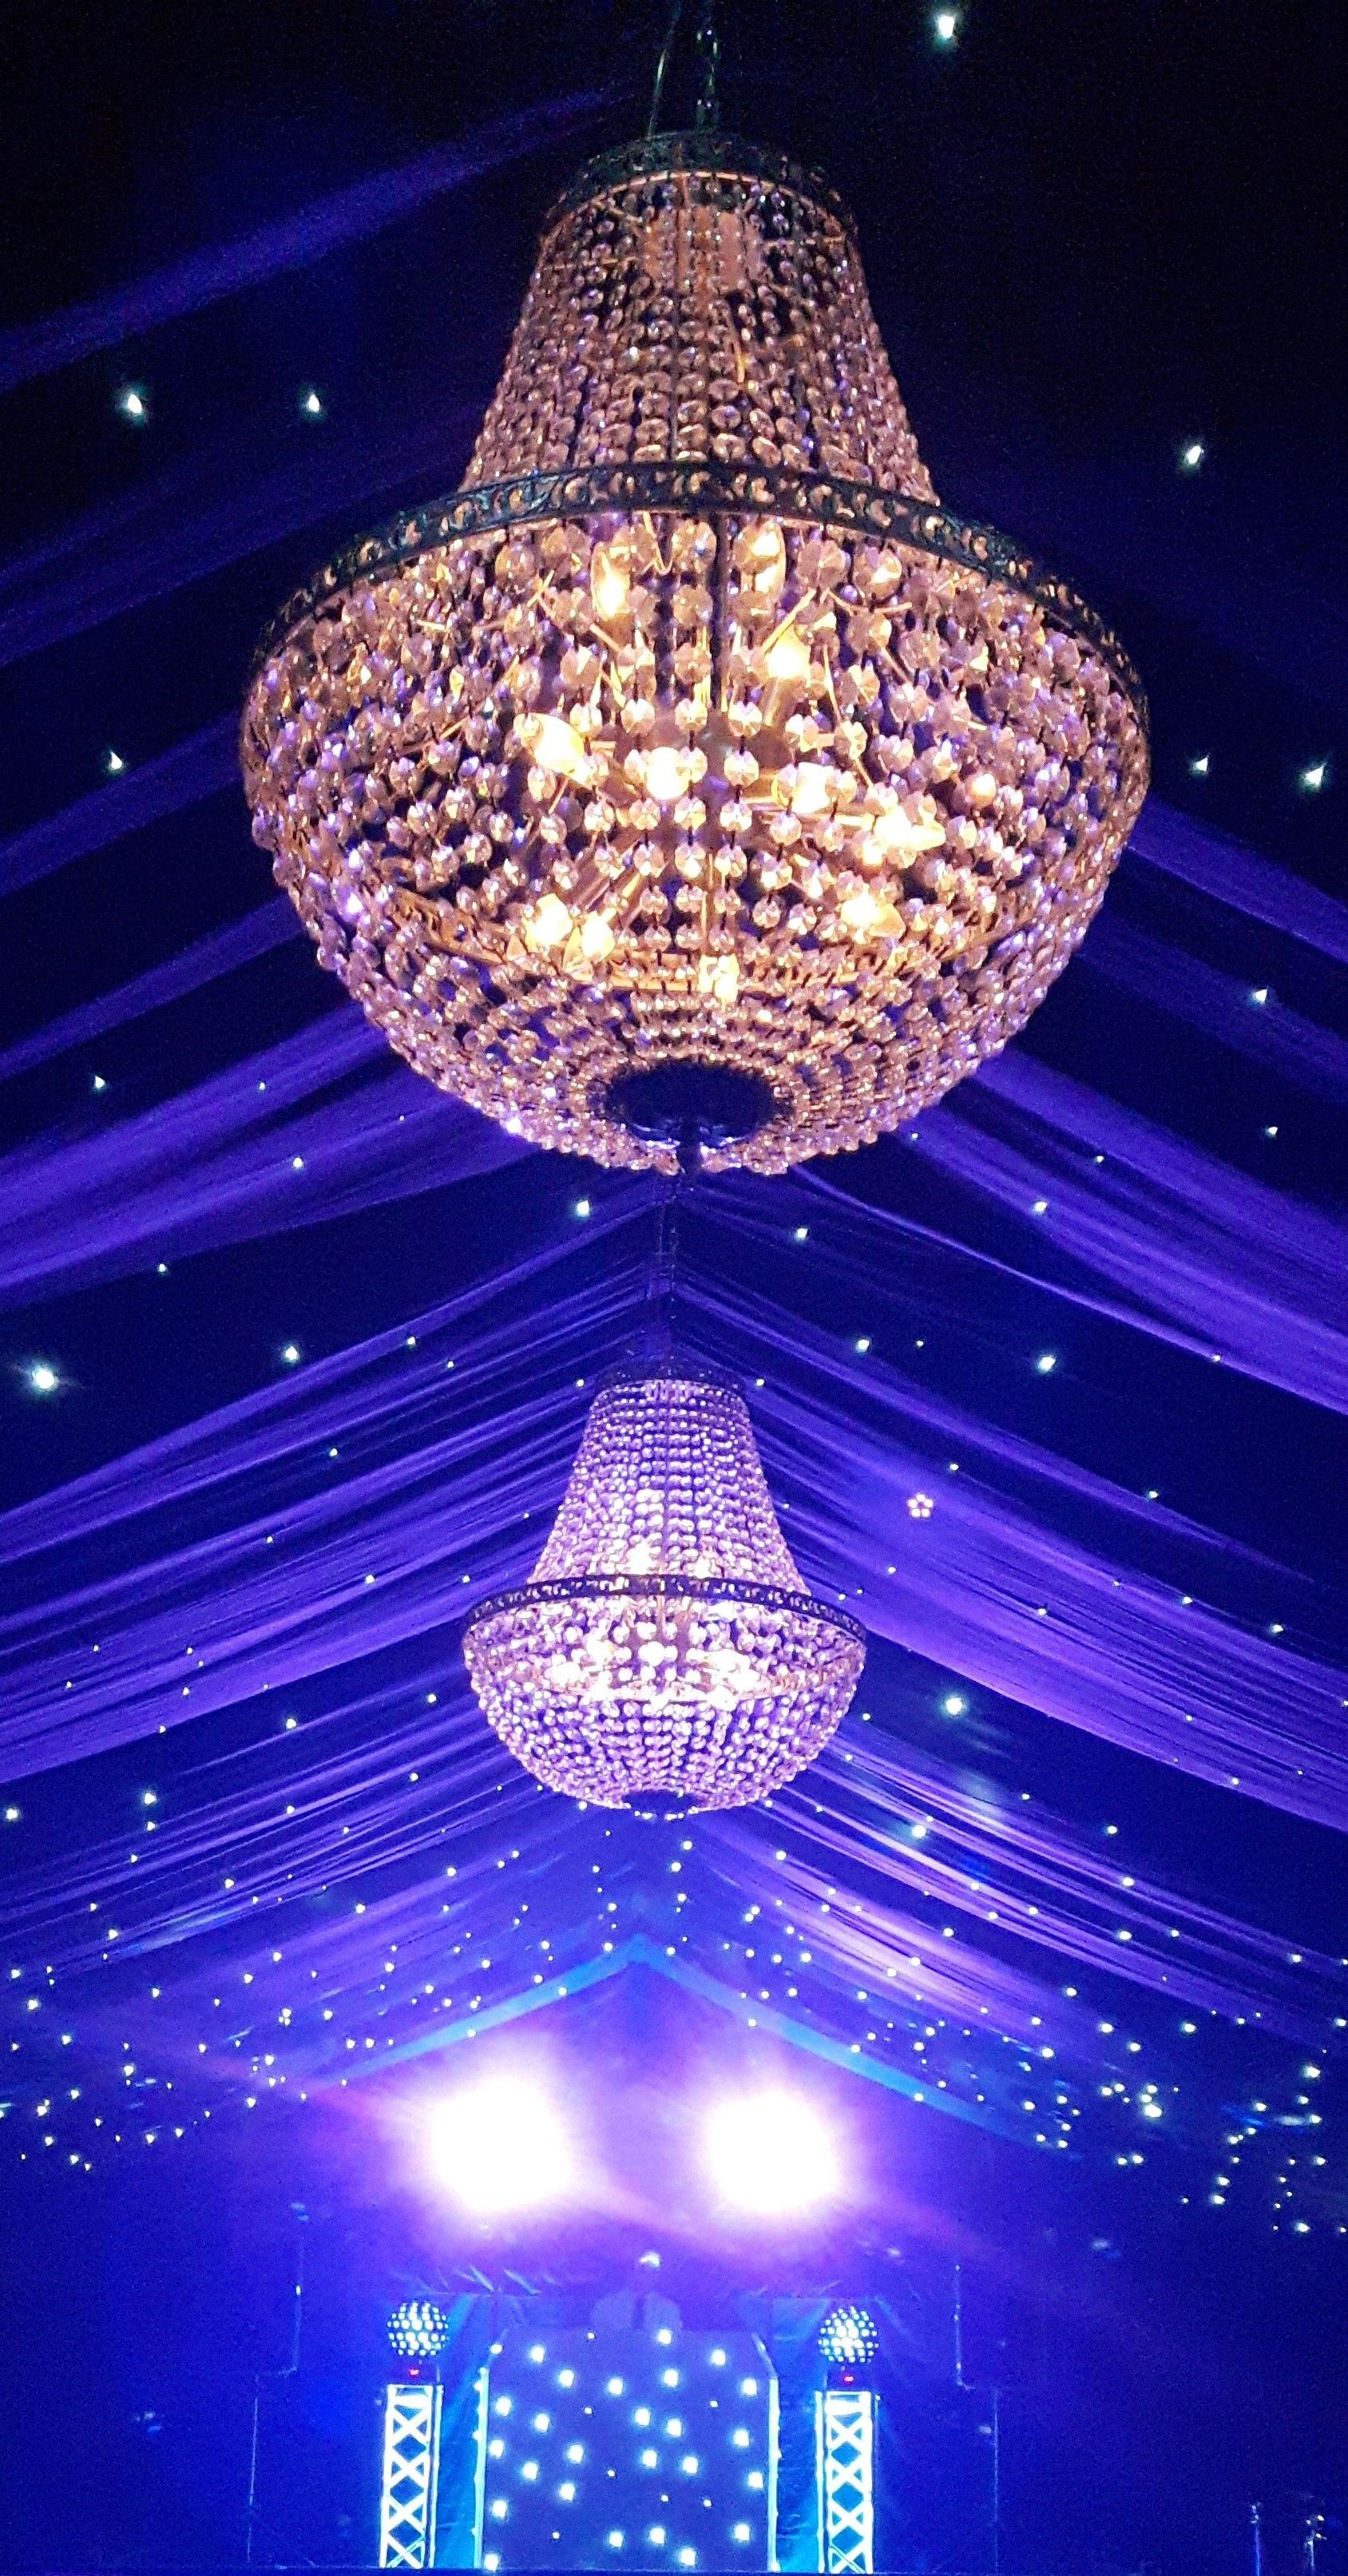 Gorgeous Chandeliers Take Centre Stage Hanging From The